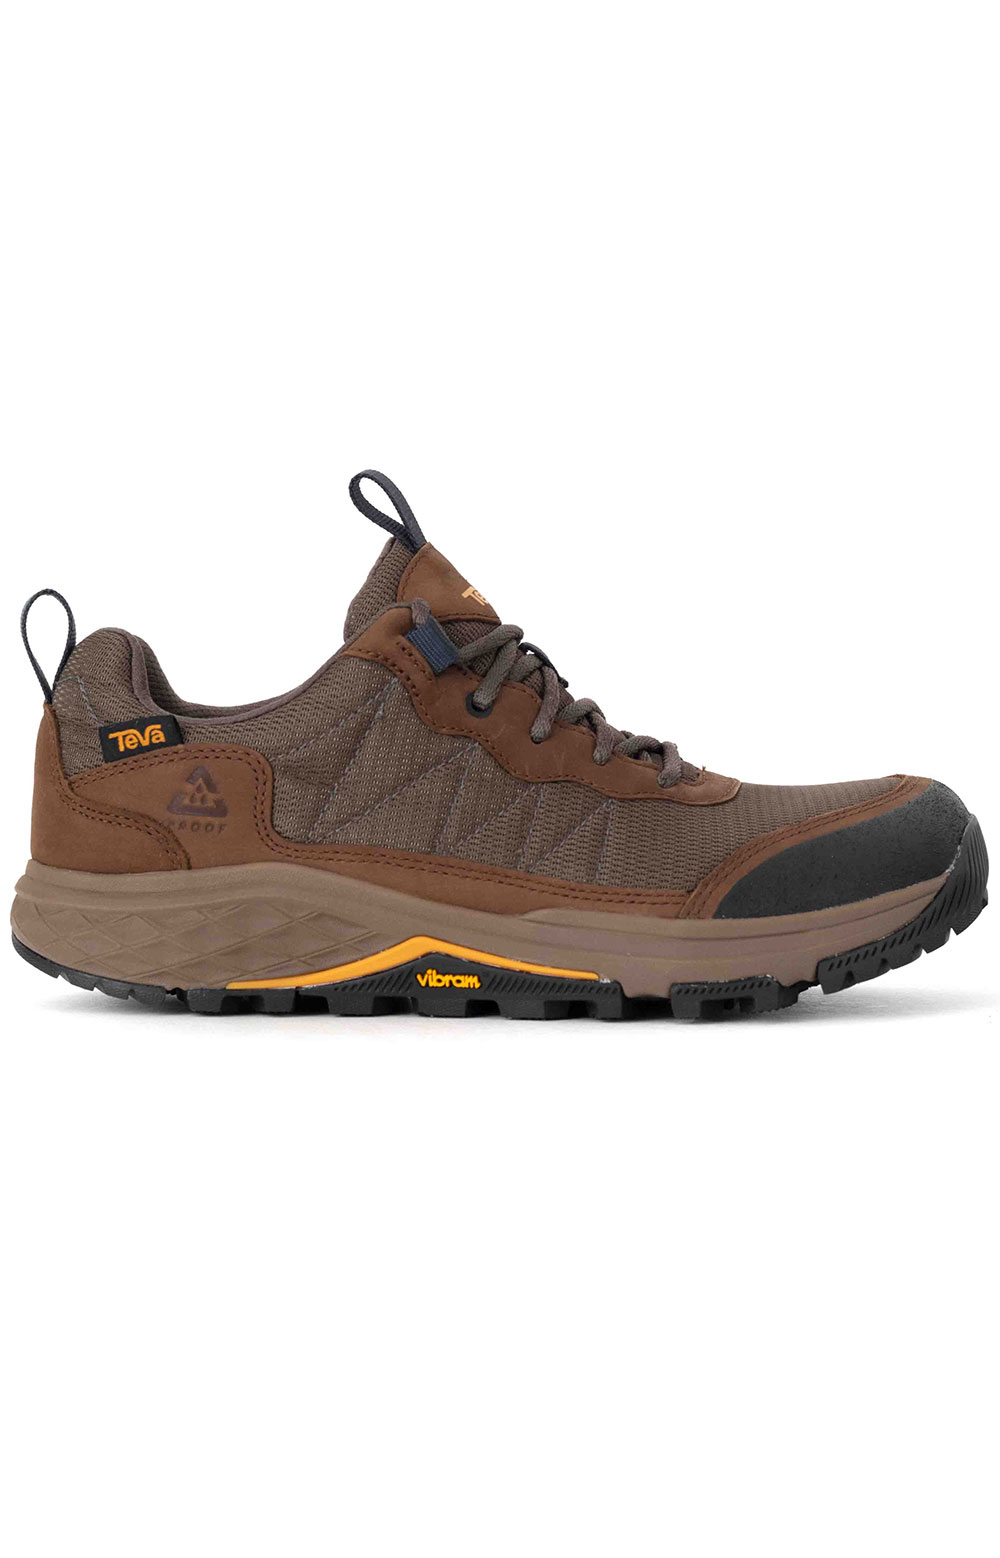 (1116627) Ridgeview Low Shoes - Brown